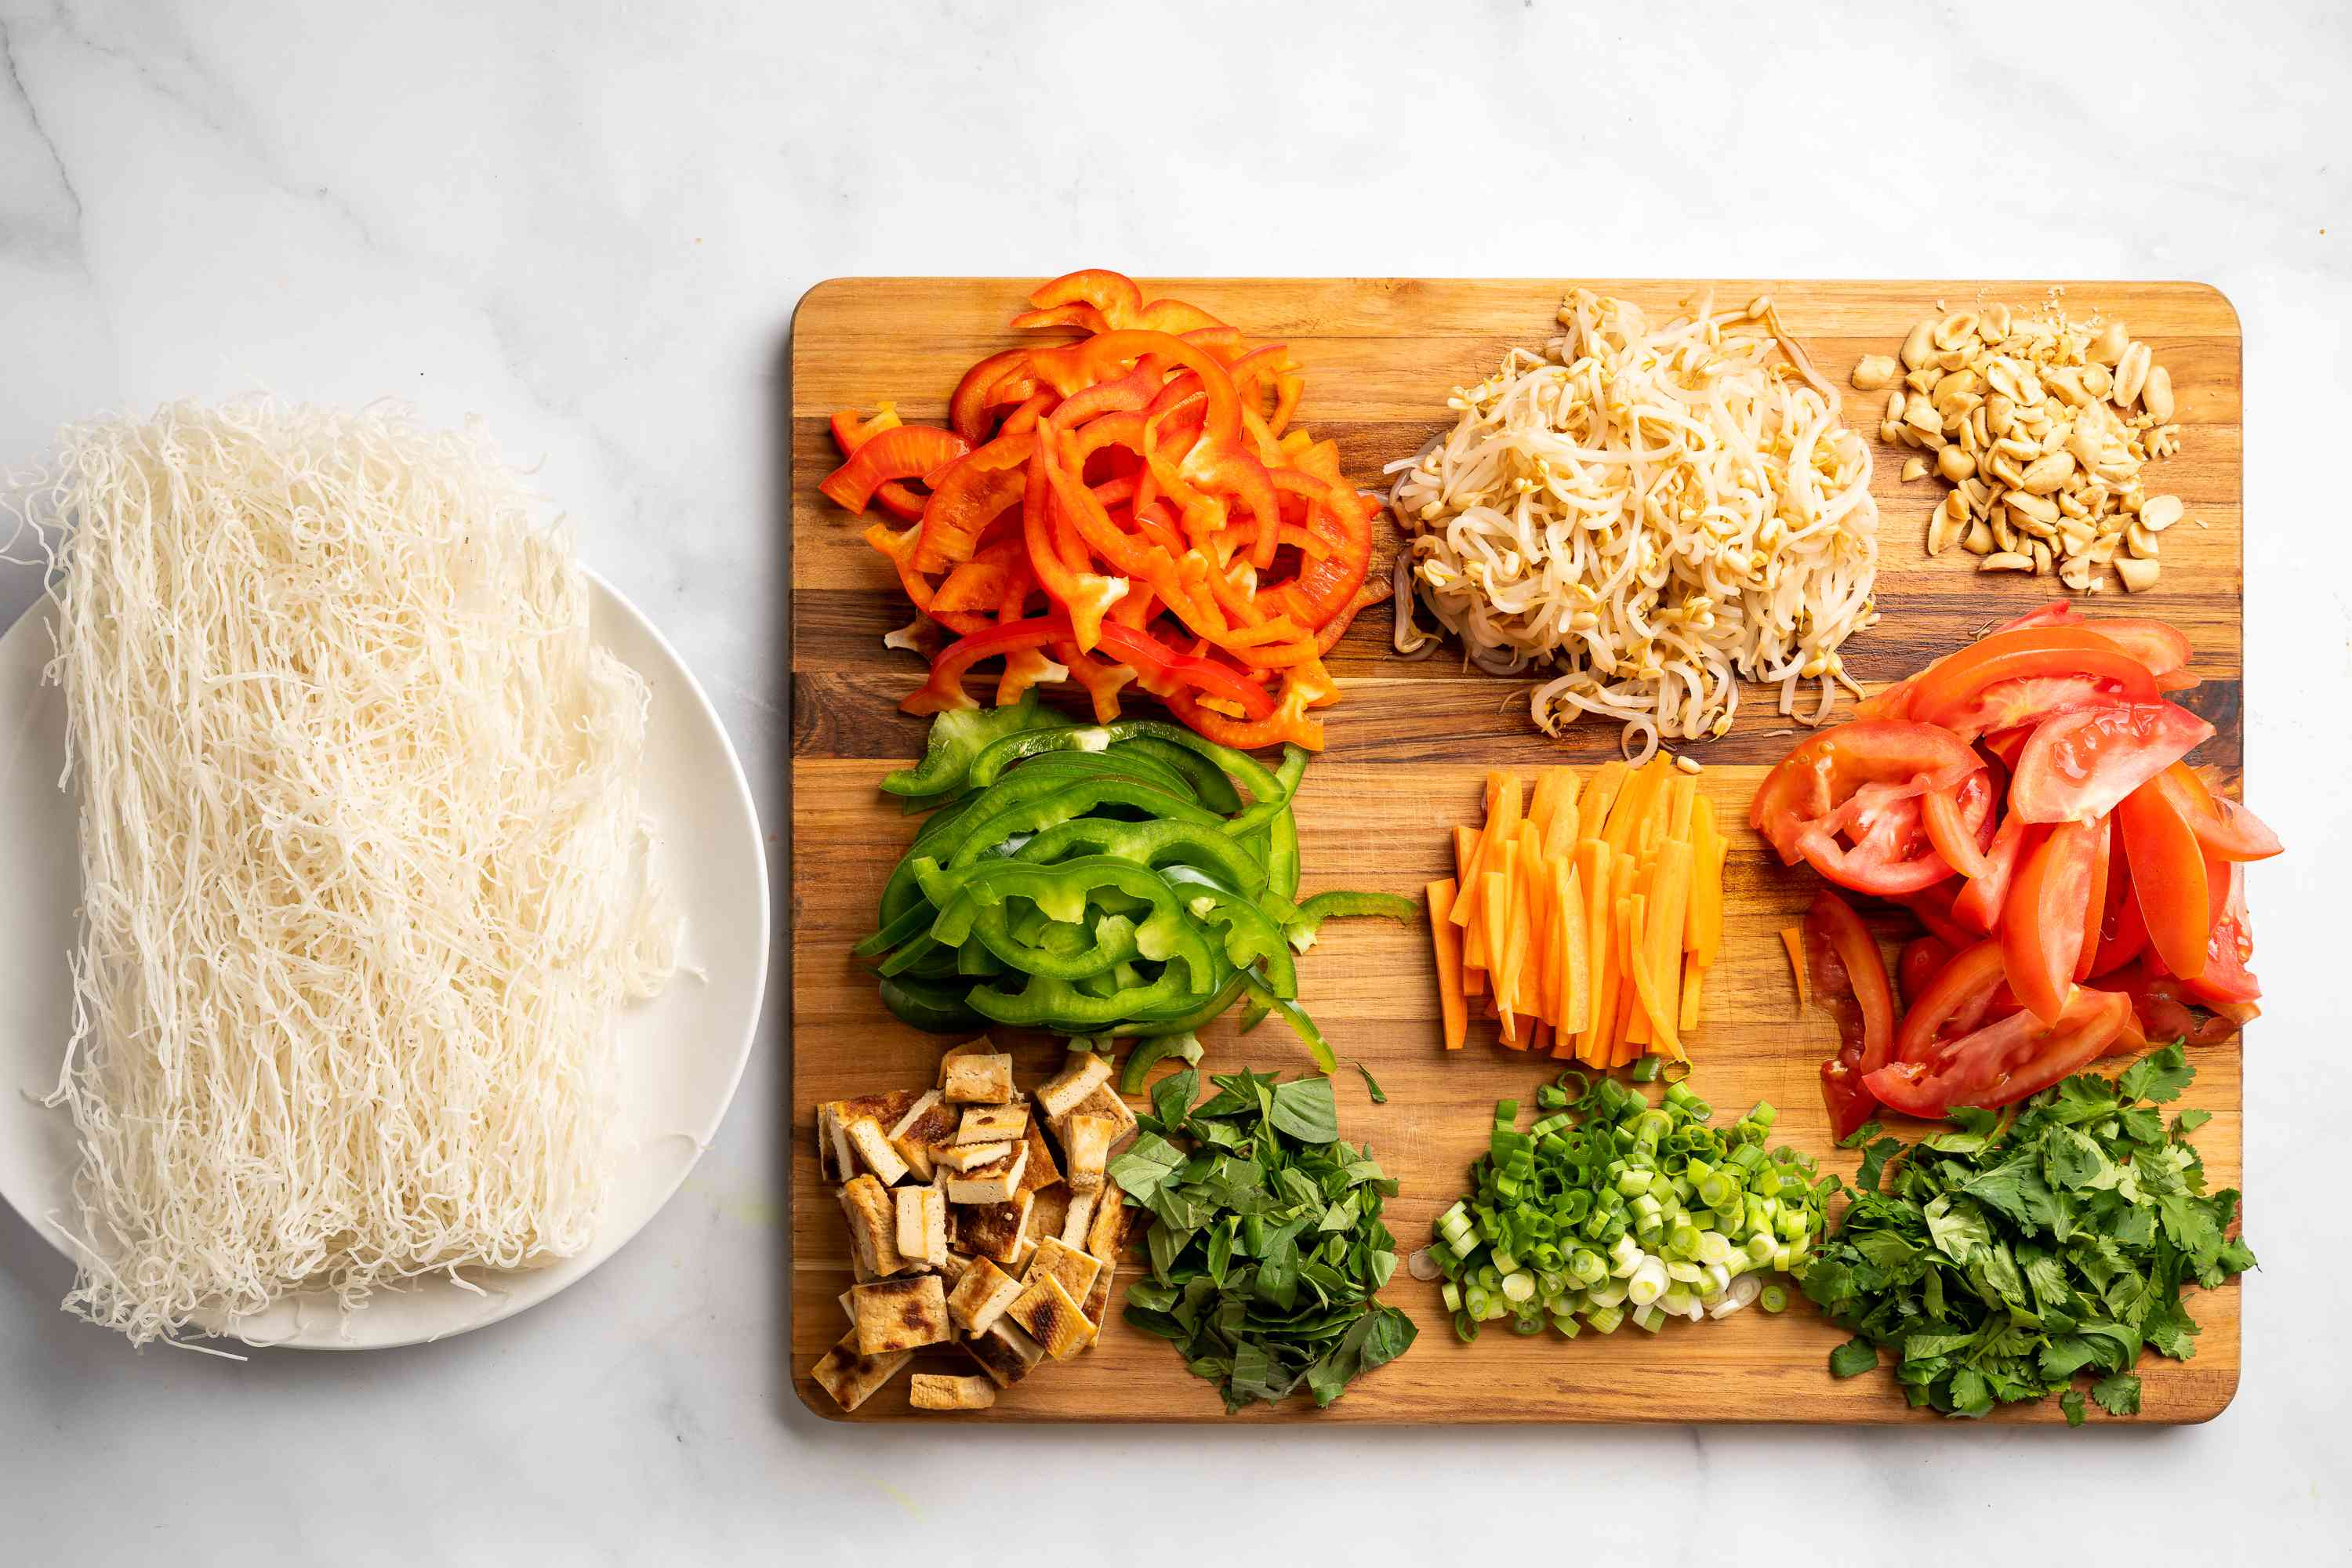 Thai Rice Noodle Salad With Chili-Lime Vinaigrette ingredients for salad